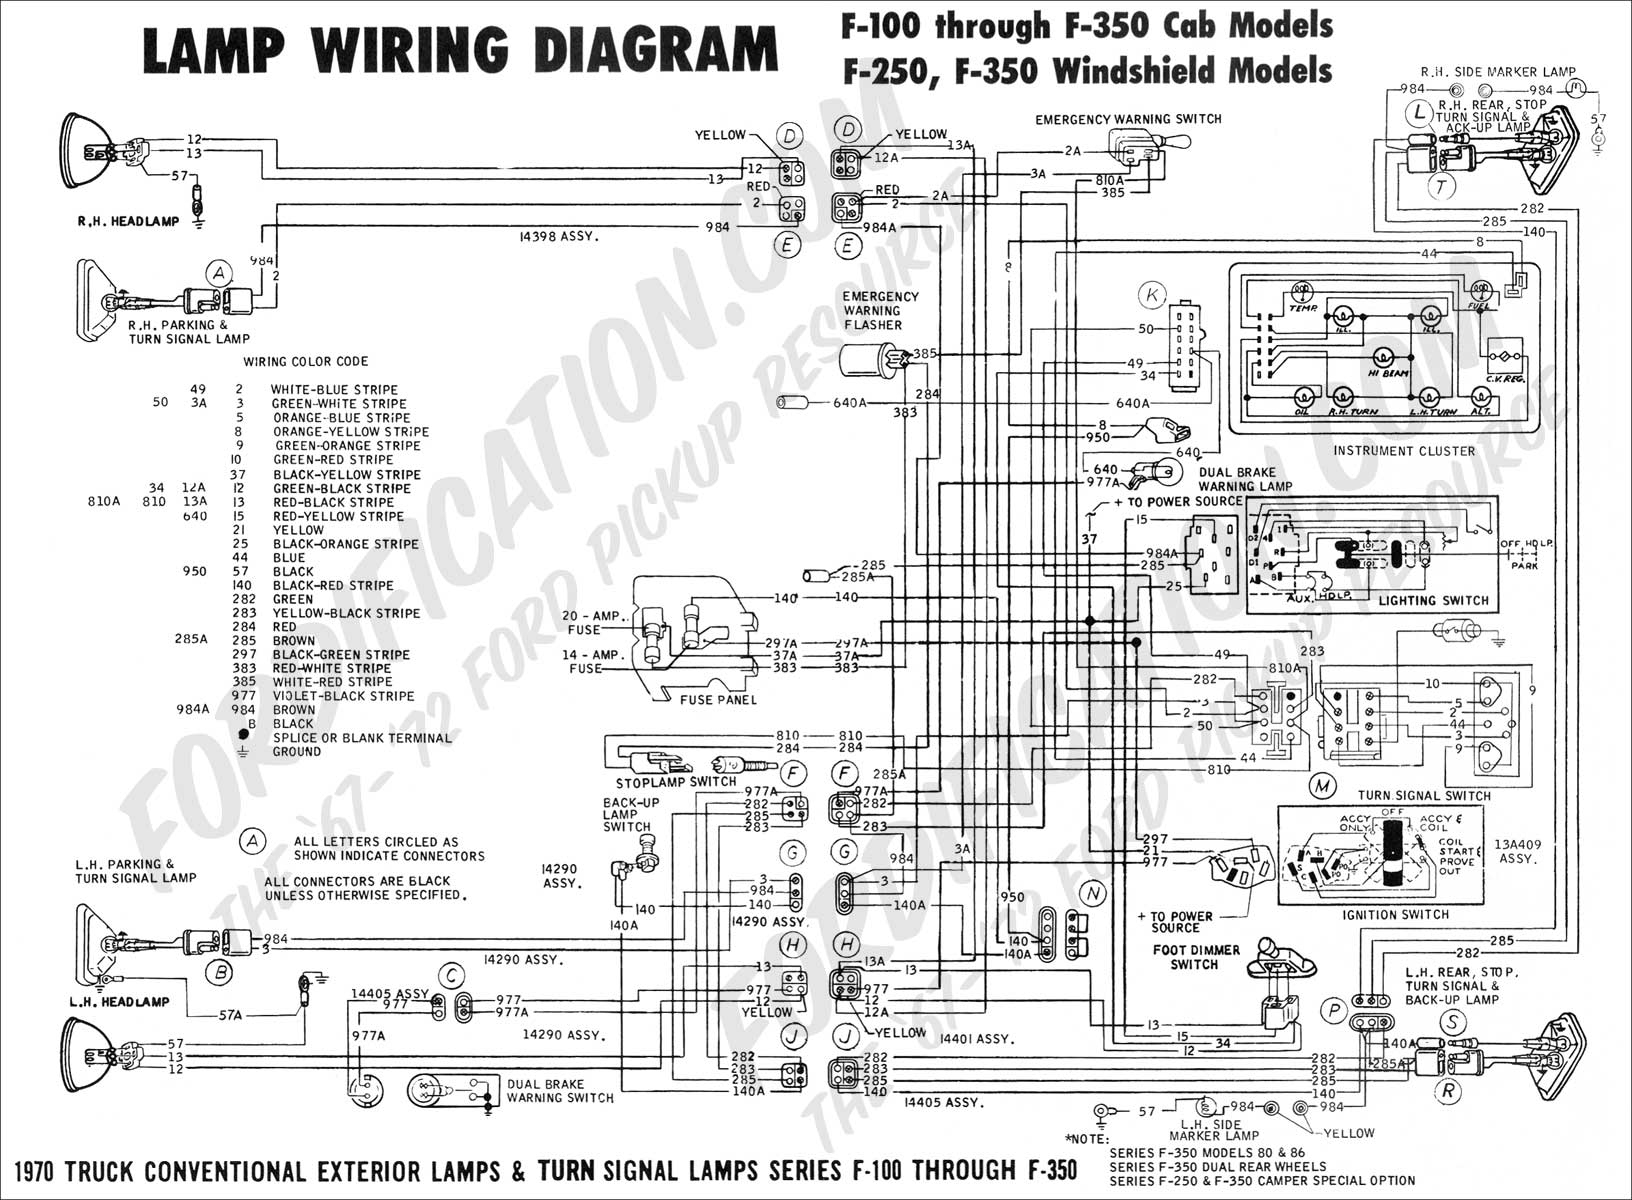 2004 F250 Wiring Diagram - All Wiring Diagram Data - Ford Wiring Diagram